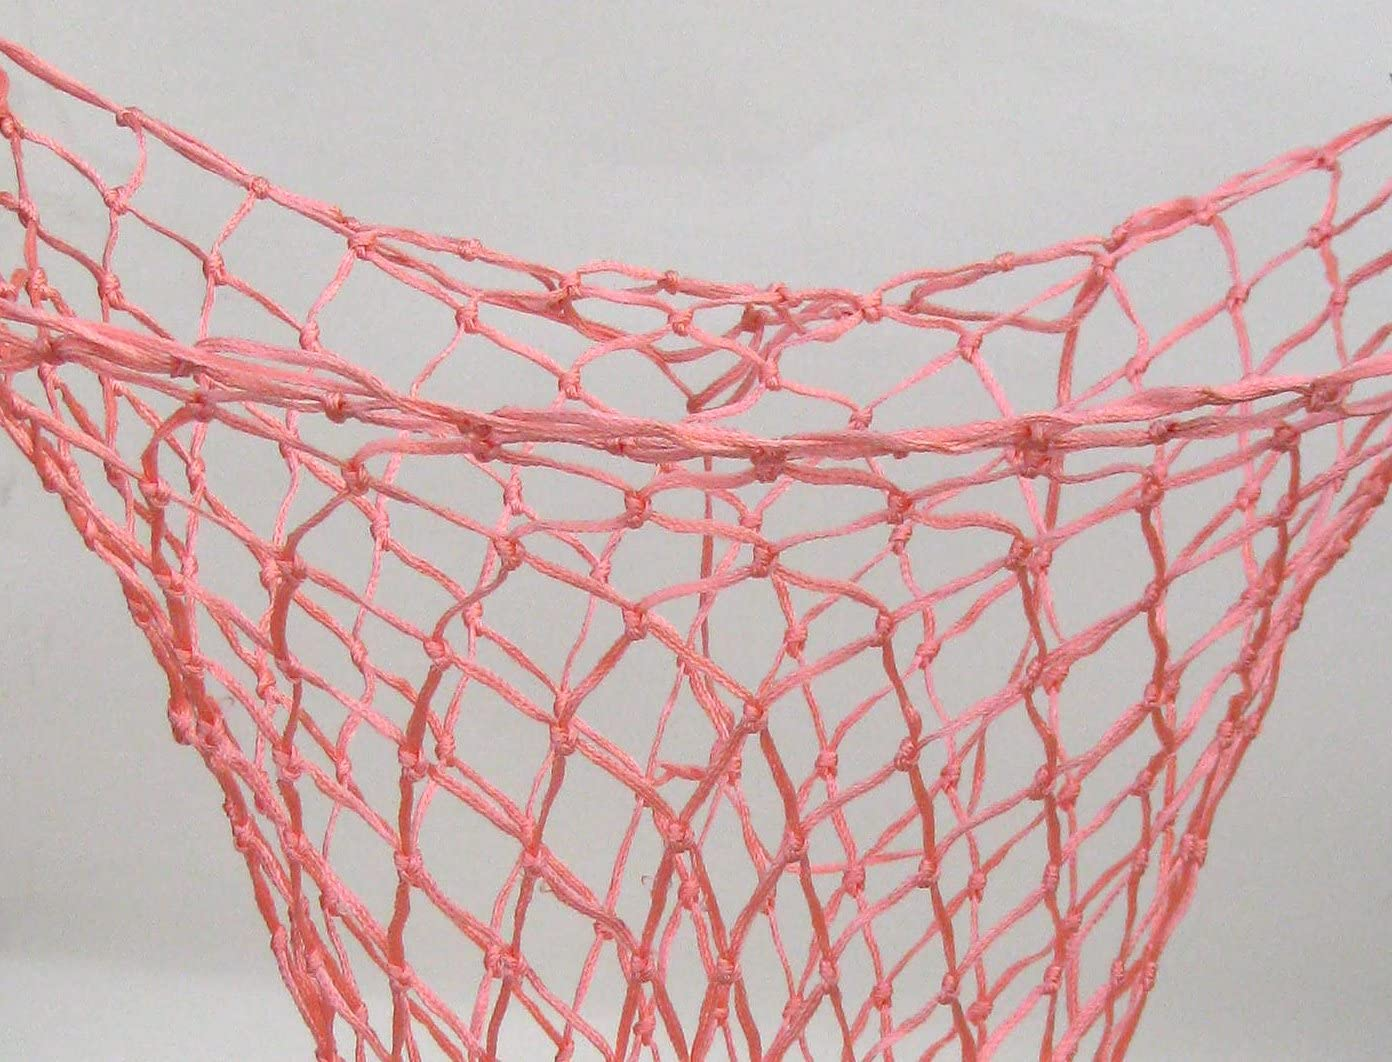 TintPets Small Holed Haynet//Haylage 42 WITH 2 HOLES available in 5 colors